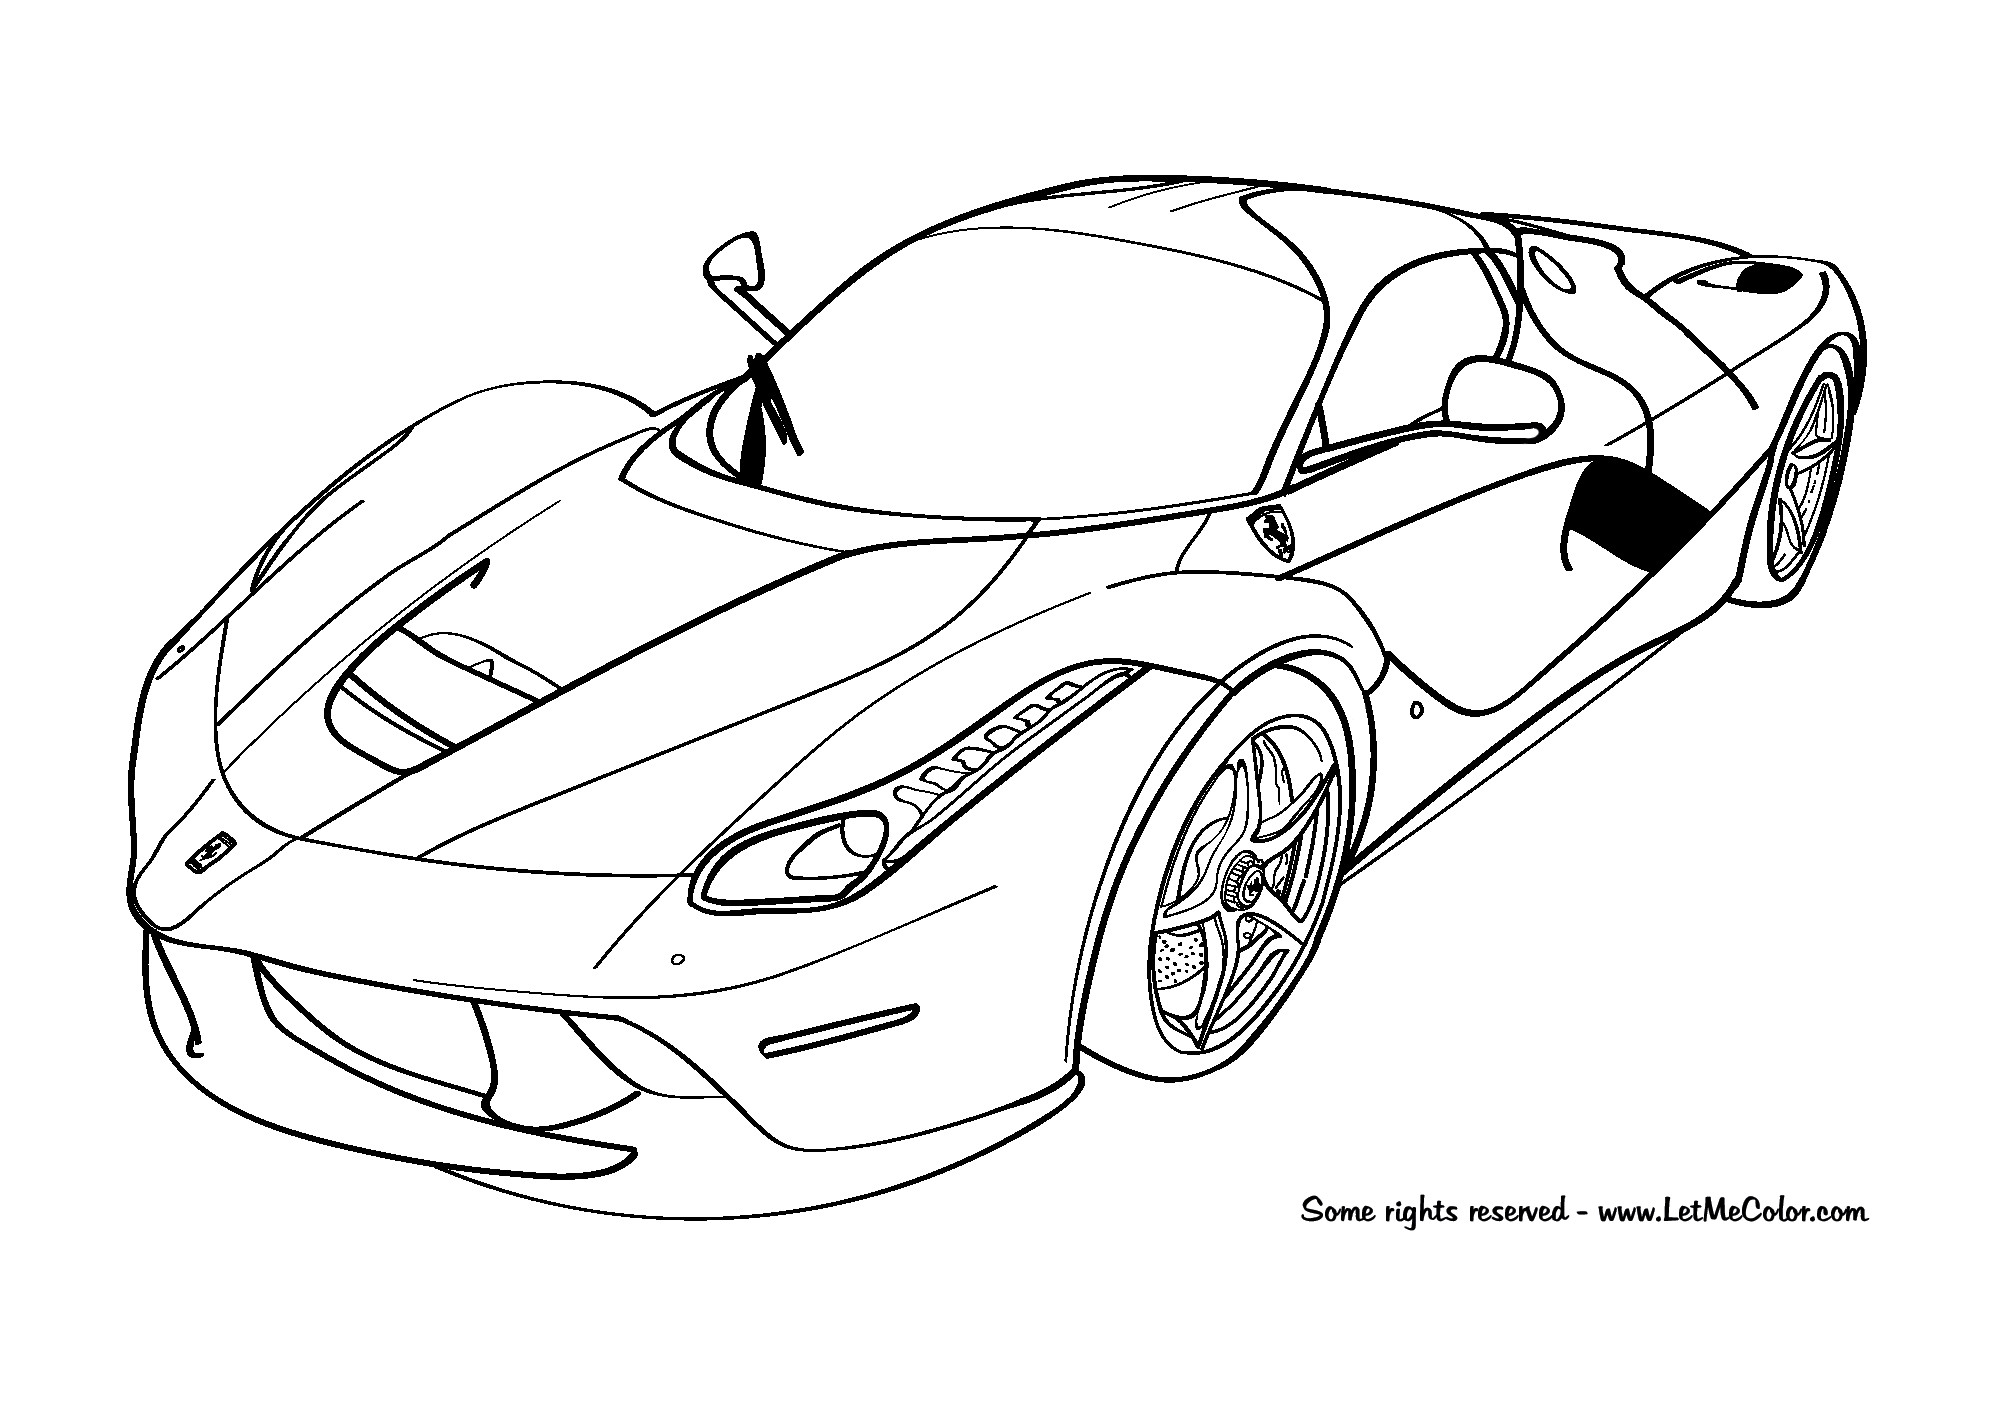 Ferrari Coloring Pages For Kids  coloring cars – LetMeColor